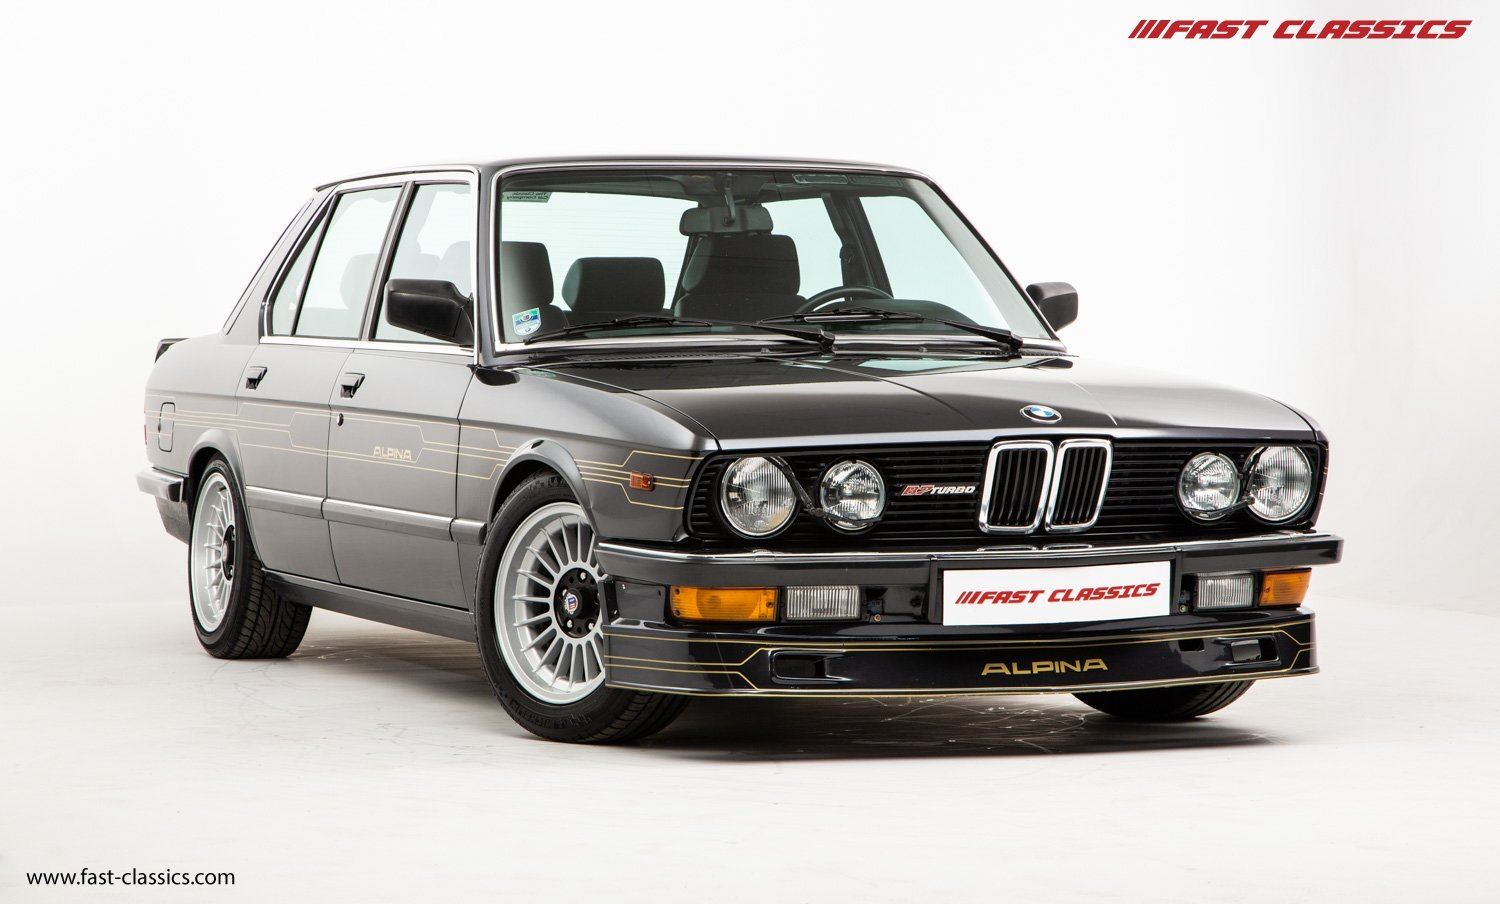 1986 ALPINA B7 TURBO/1 // 1 OF 42 HIGH POWER CATALYST CARS  For Sale (picture 6 of 24)